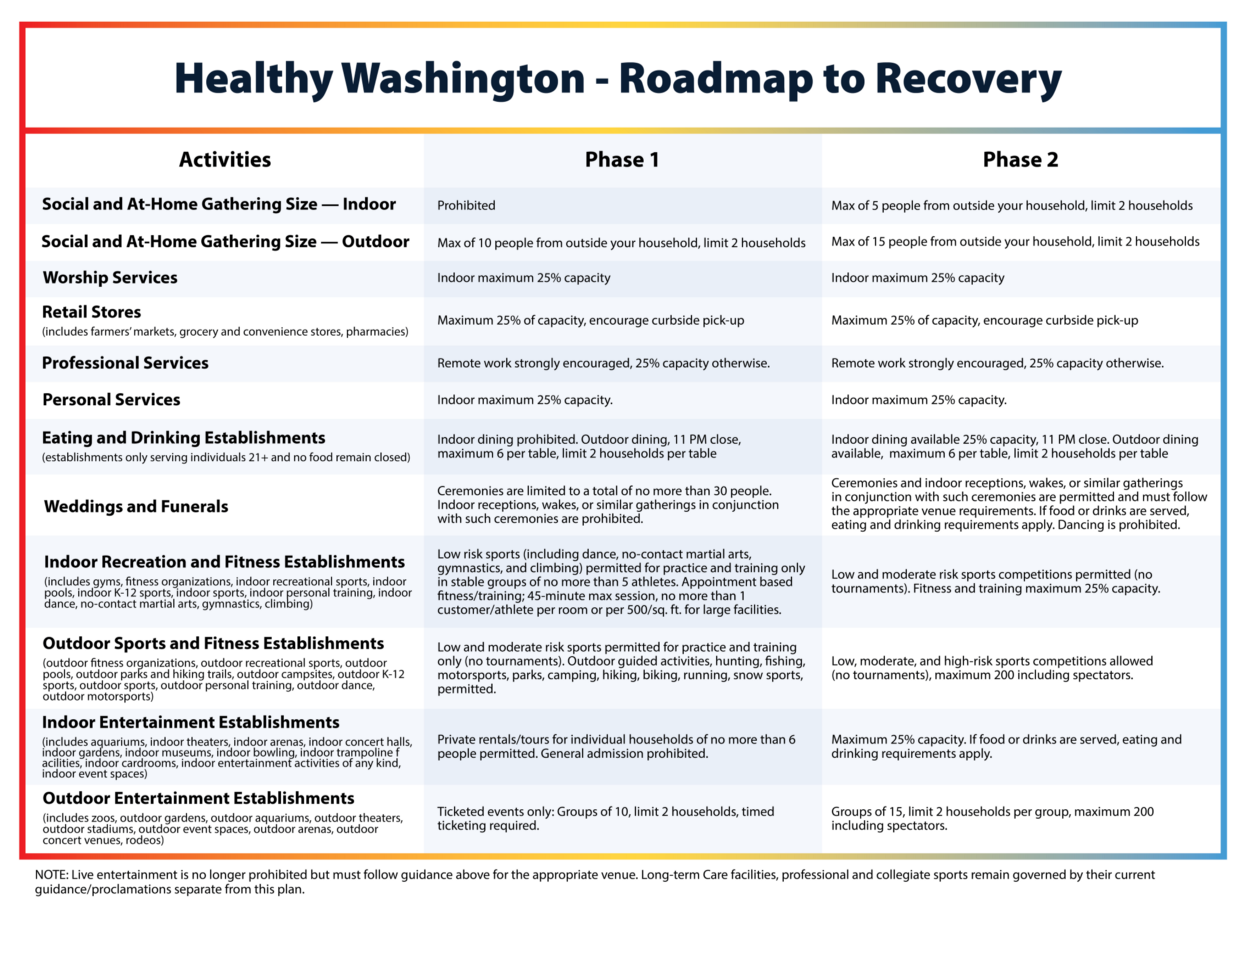 Healthy Washington - Roadmap to Recovery infographic